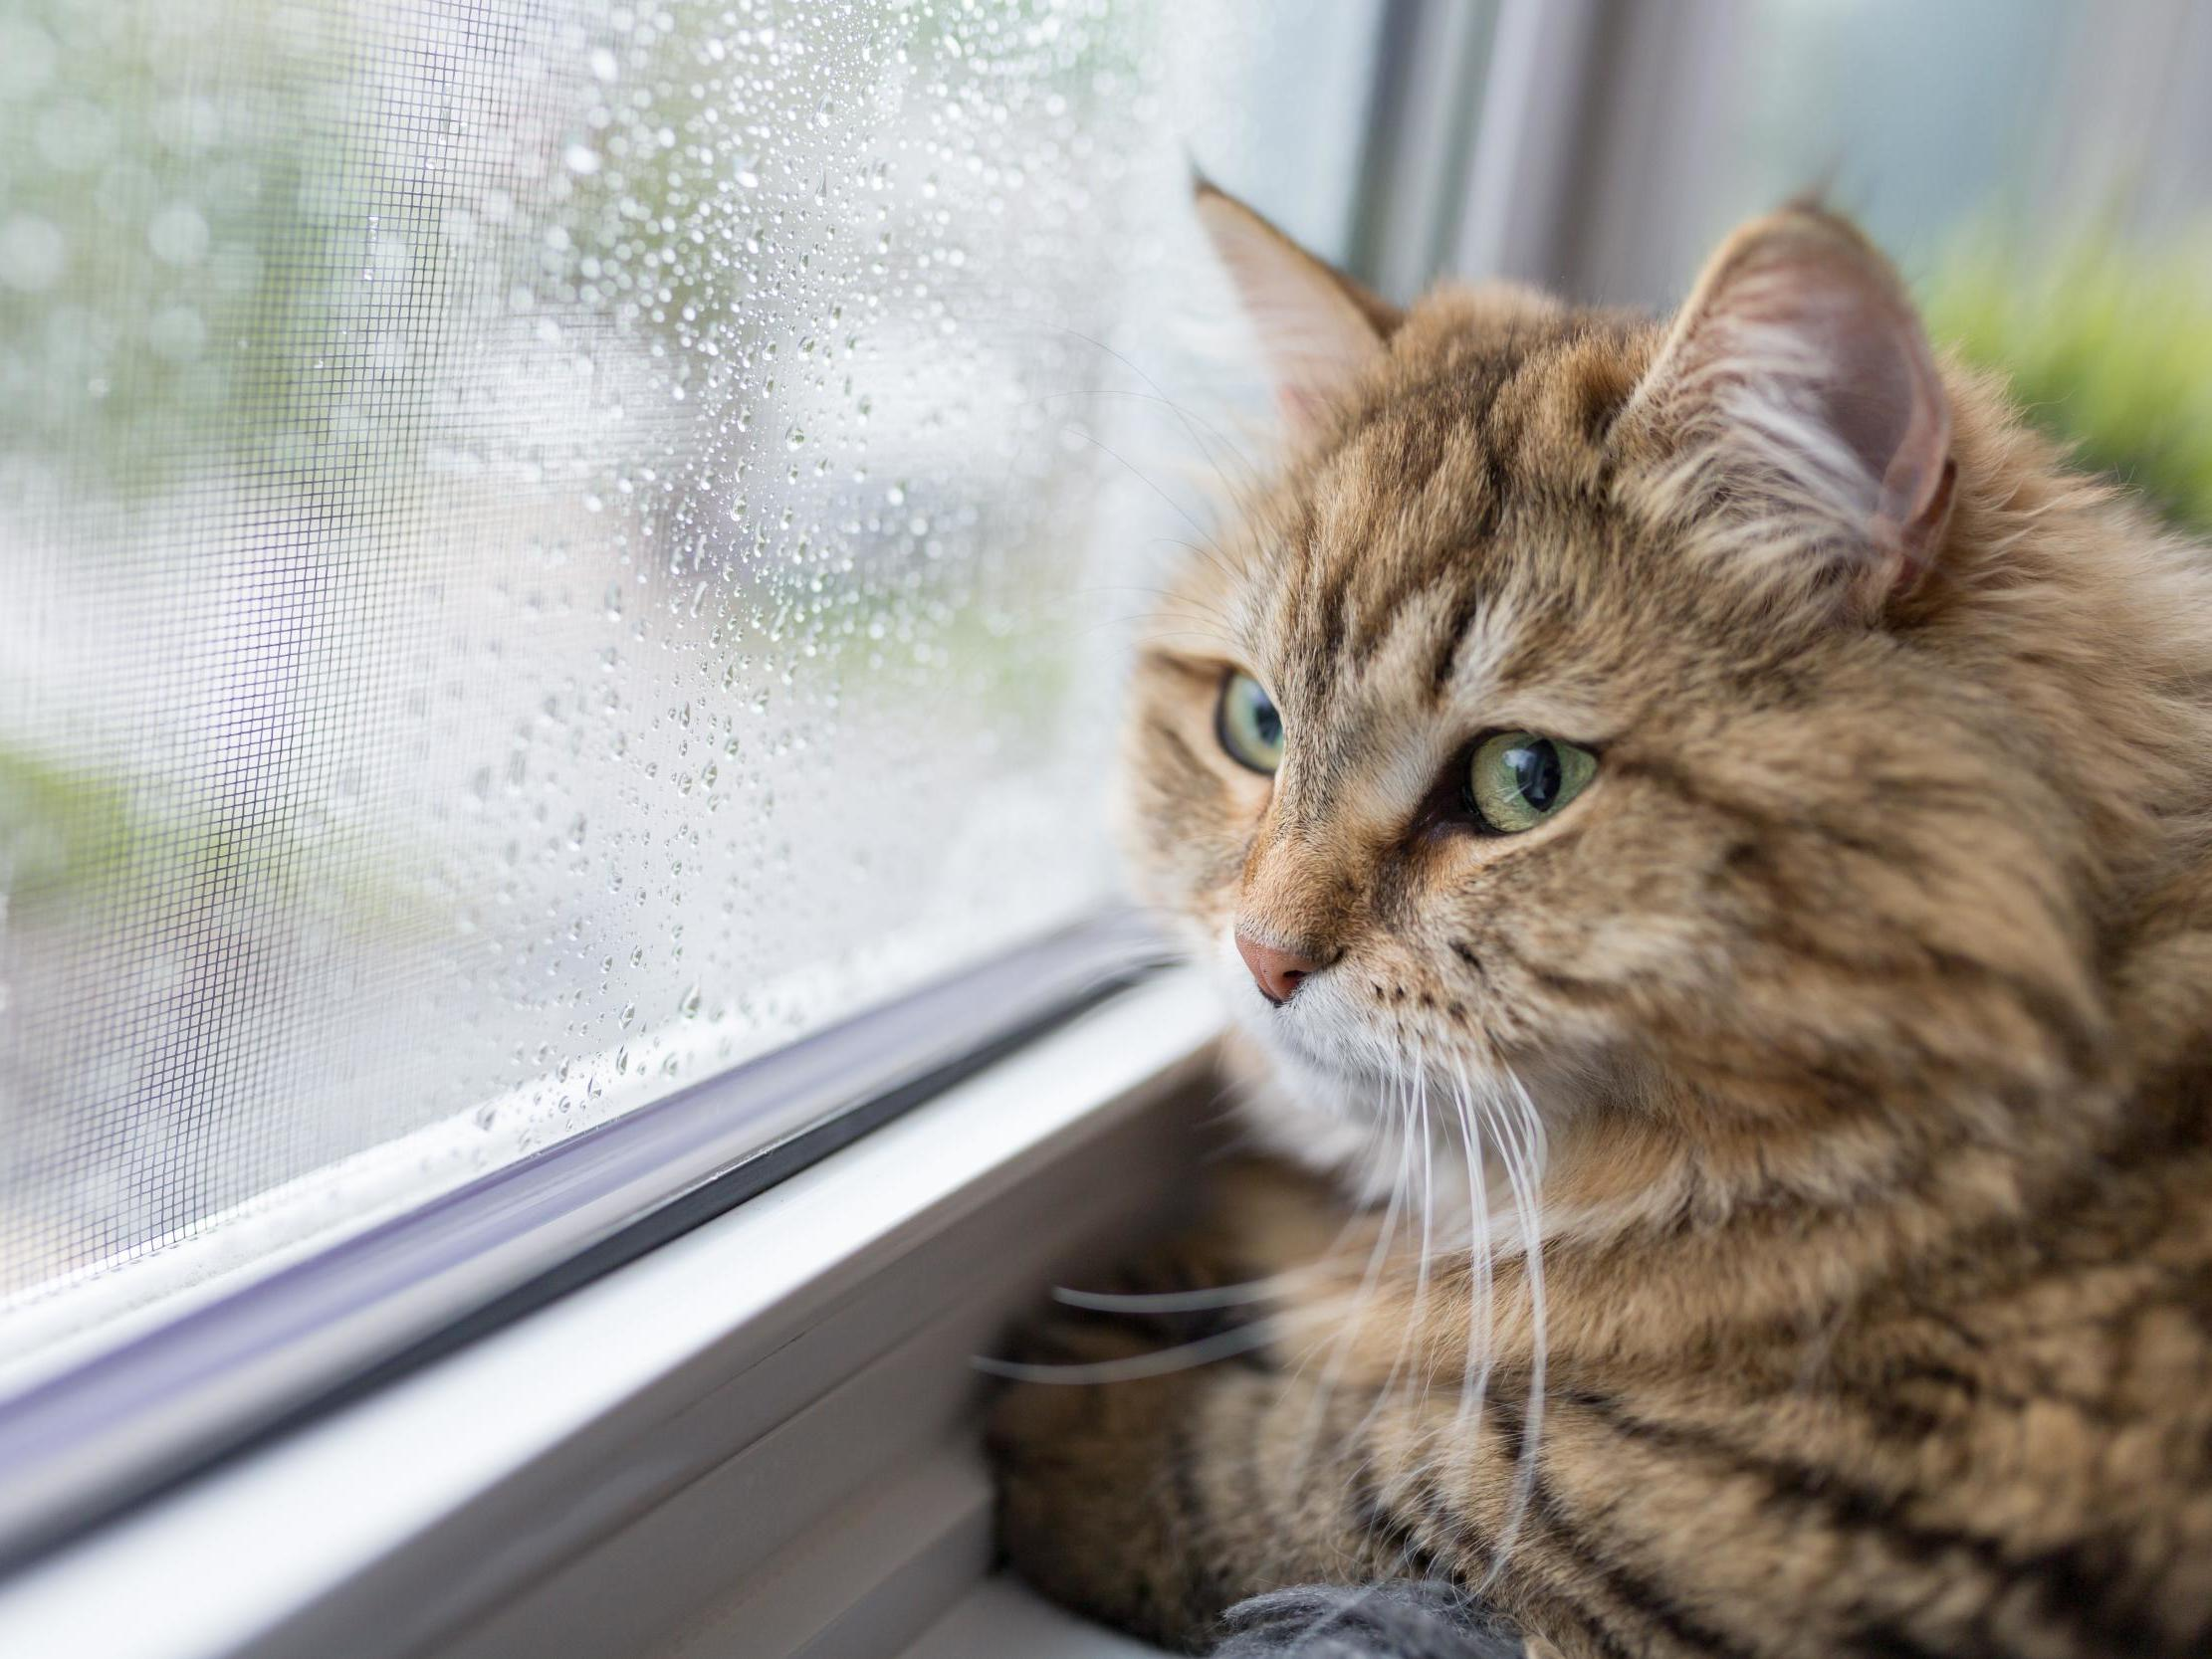 Cats Could Be Banned From Going Outside Under New Australian Law The Independent The Independent